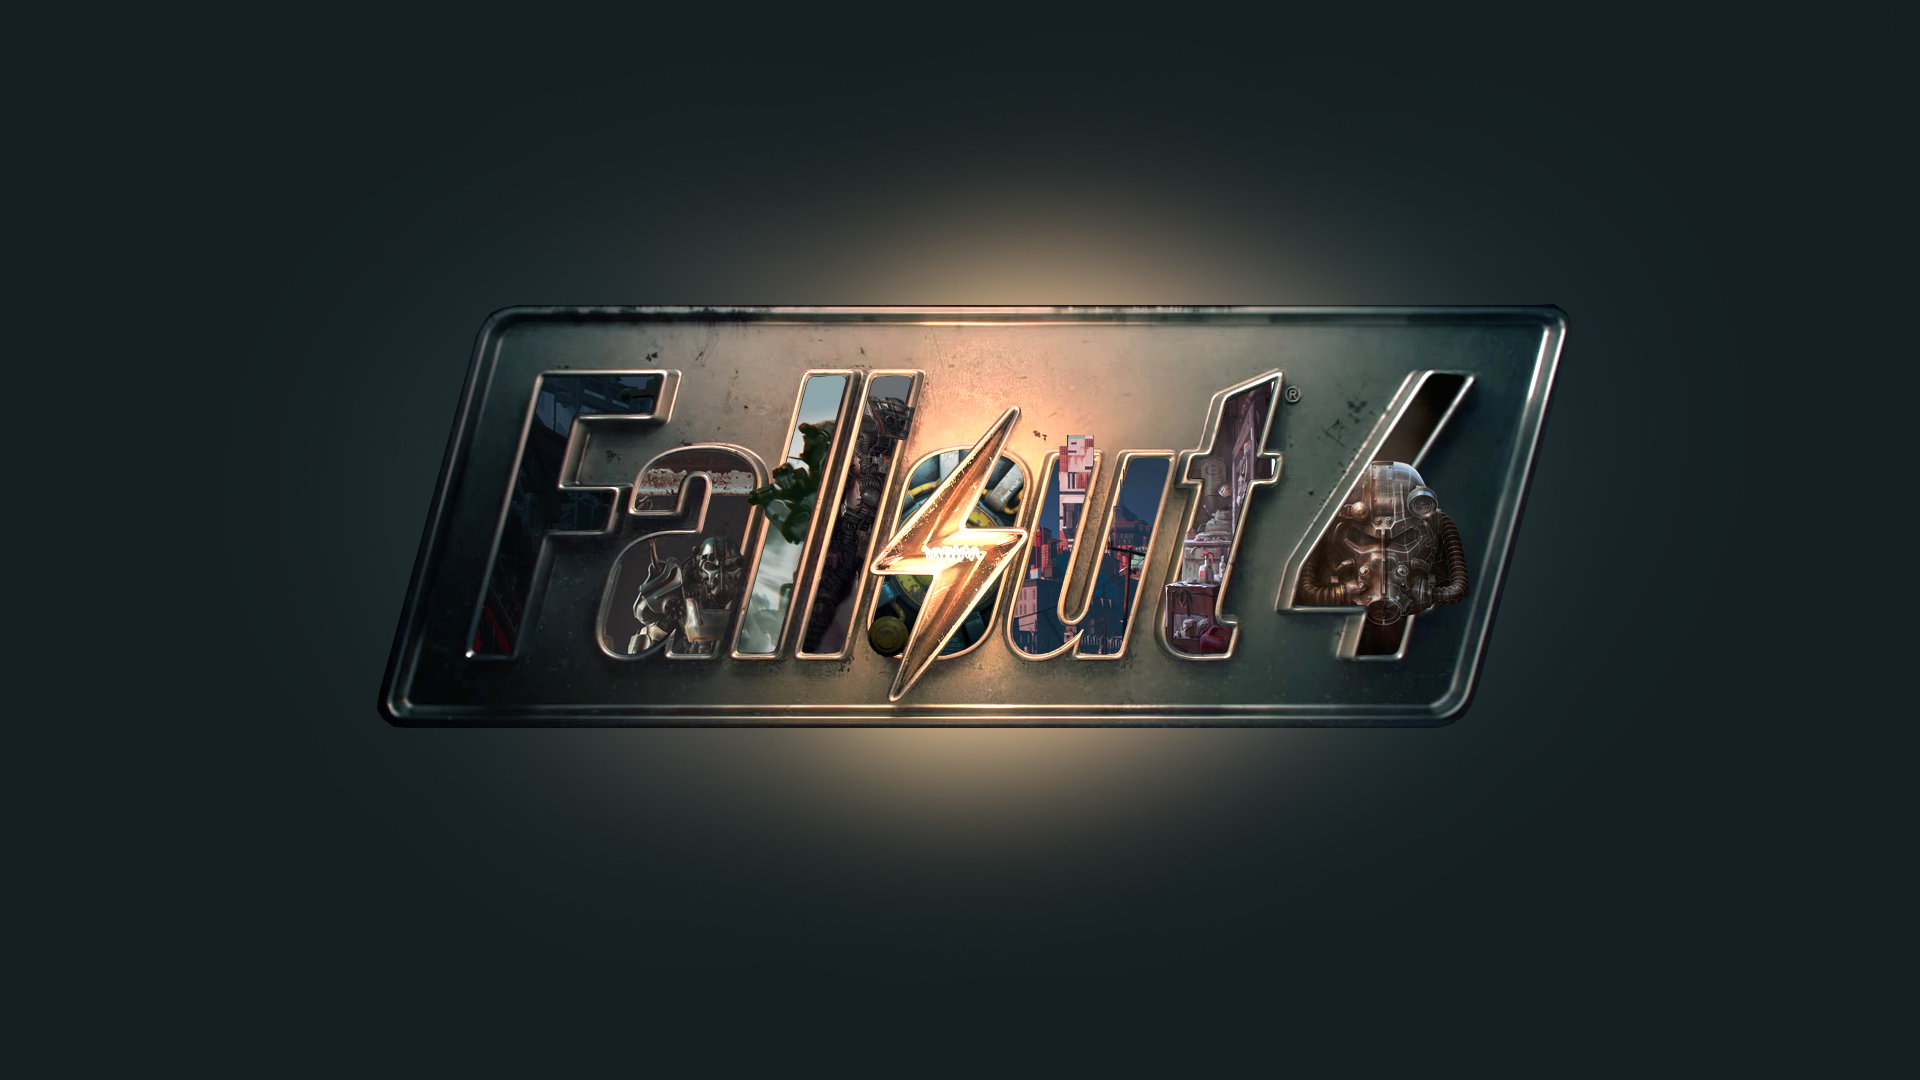 Cool Wallpaper Logo Fallout 4 - 2338745-1447006136  You Should Have_732111.jpg